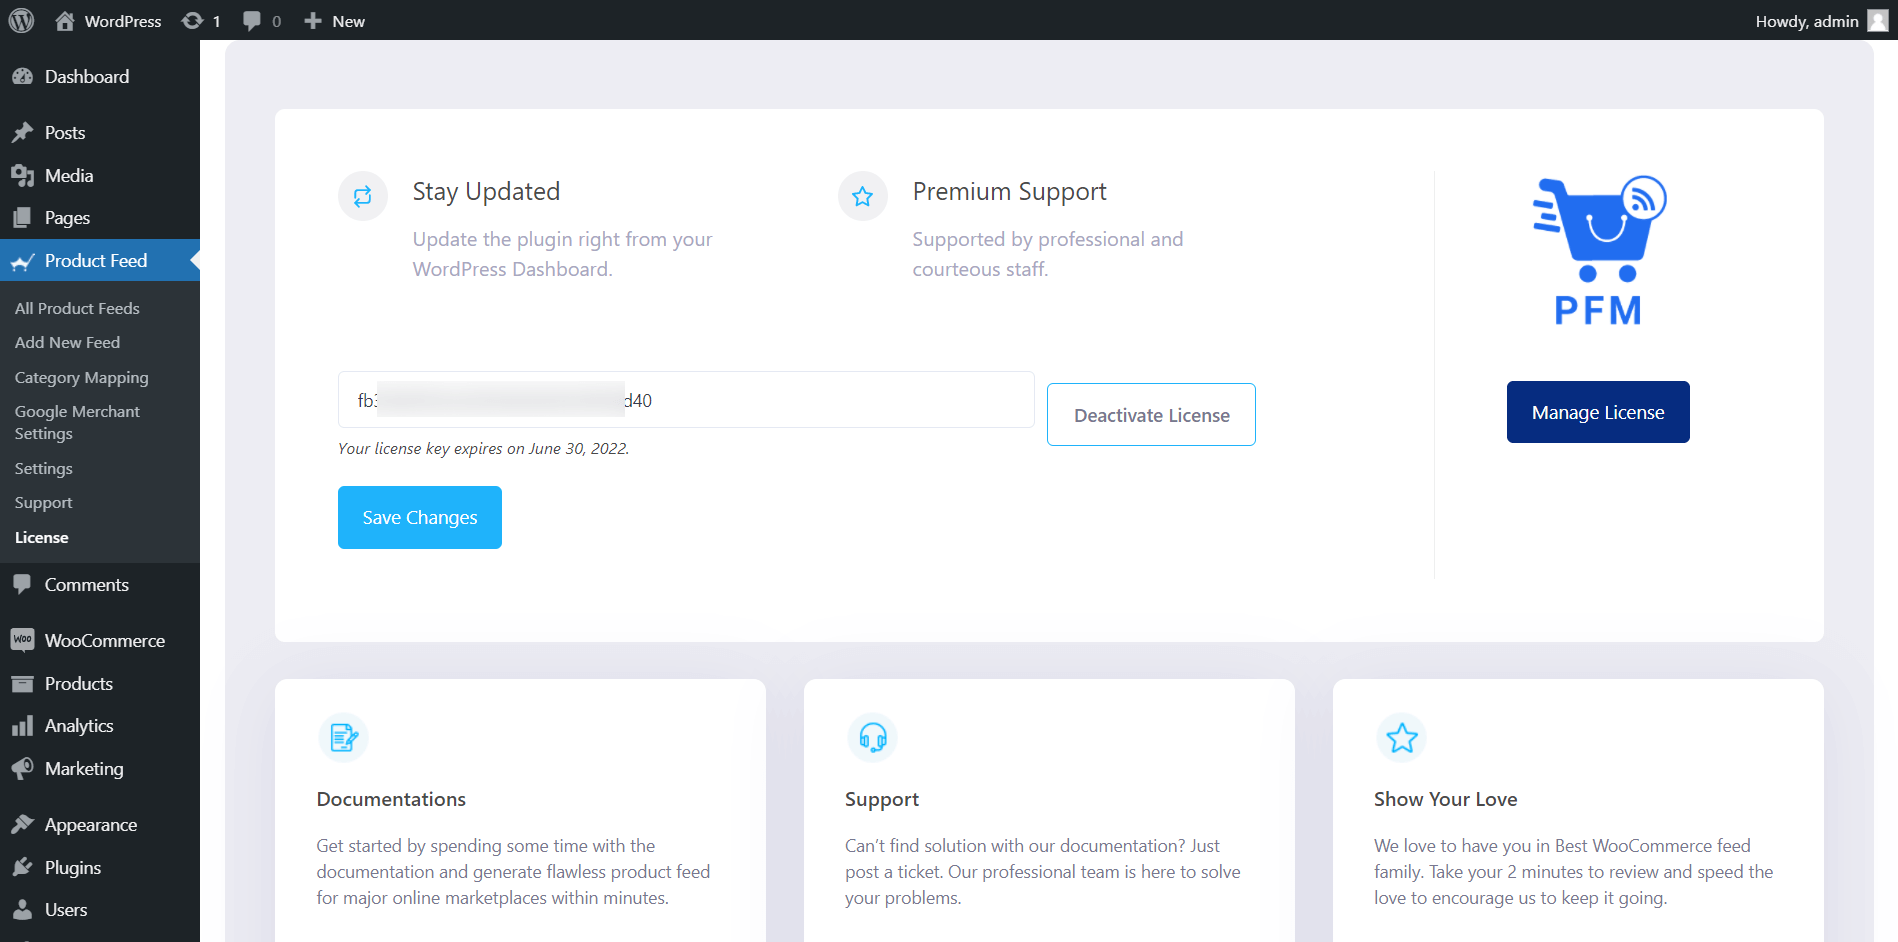 Product Feed Manager Deactivate License